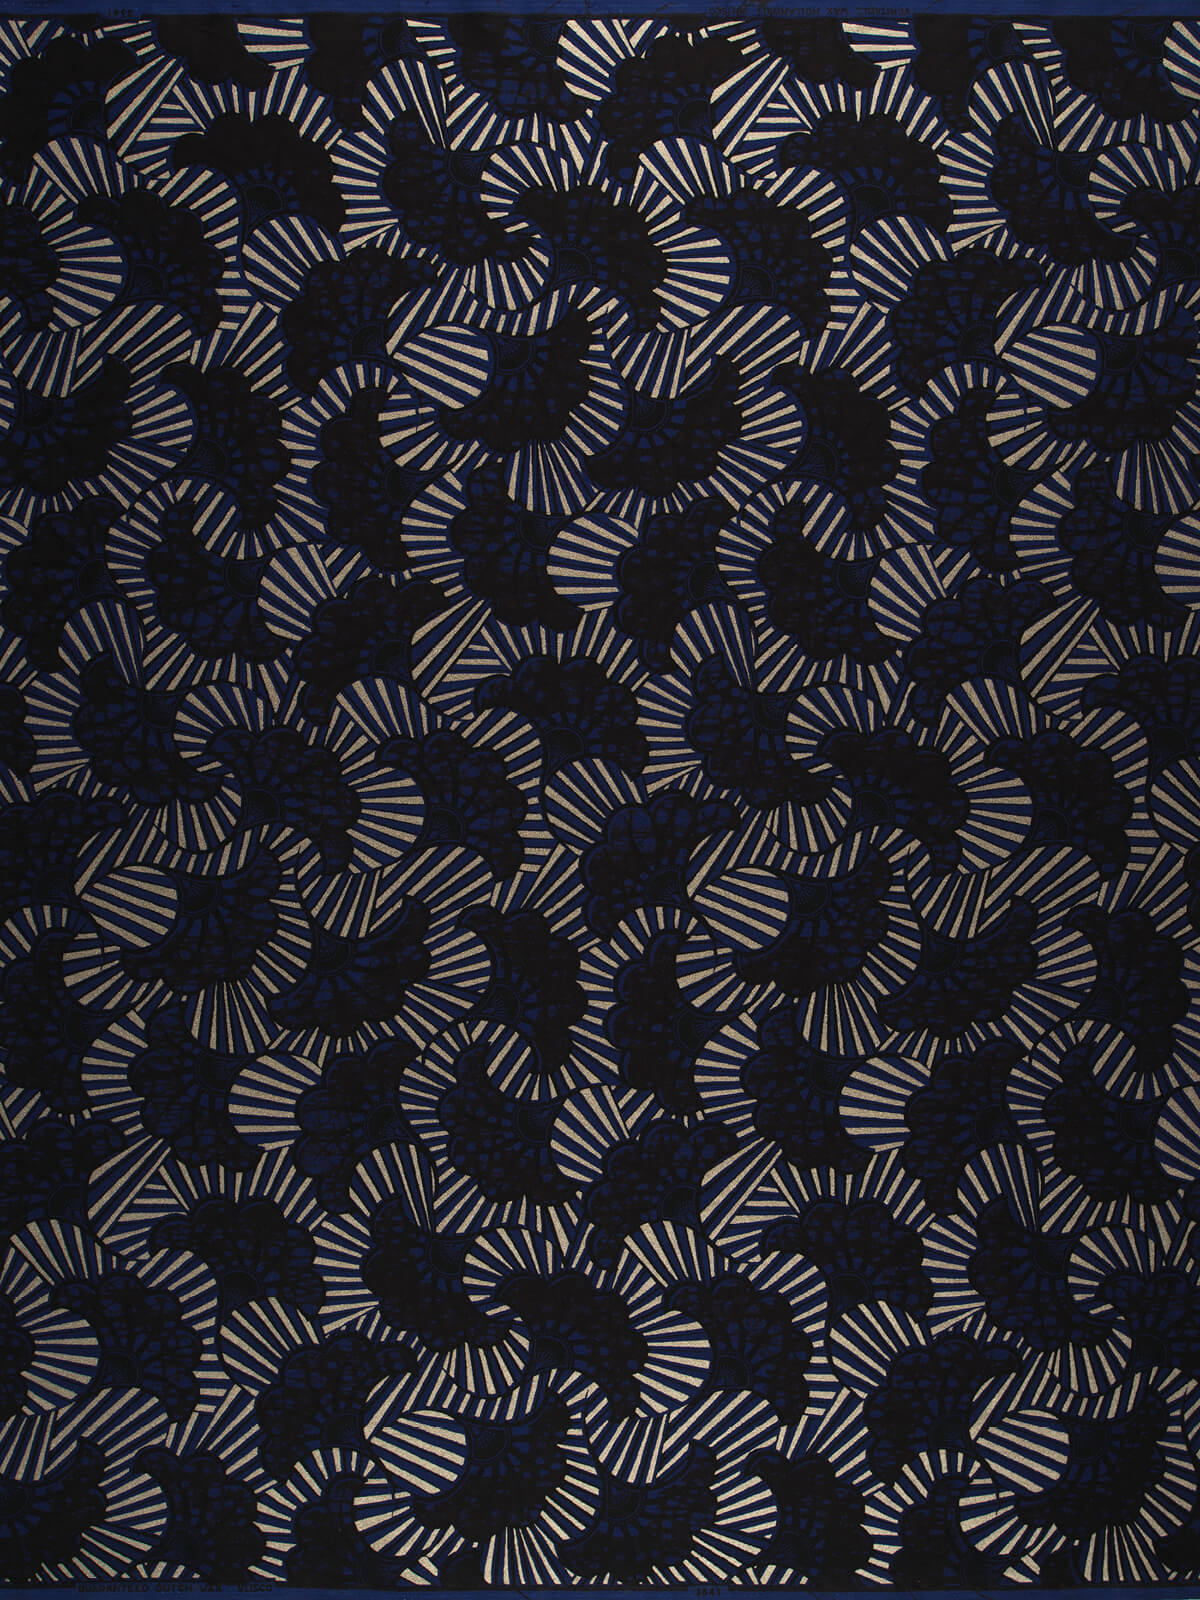 Vl03541 237 Lookbook Fabric2